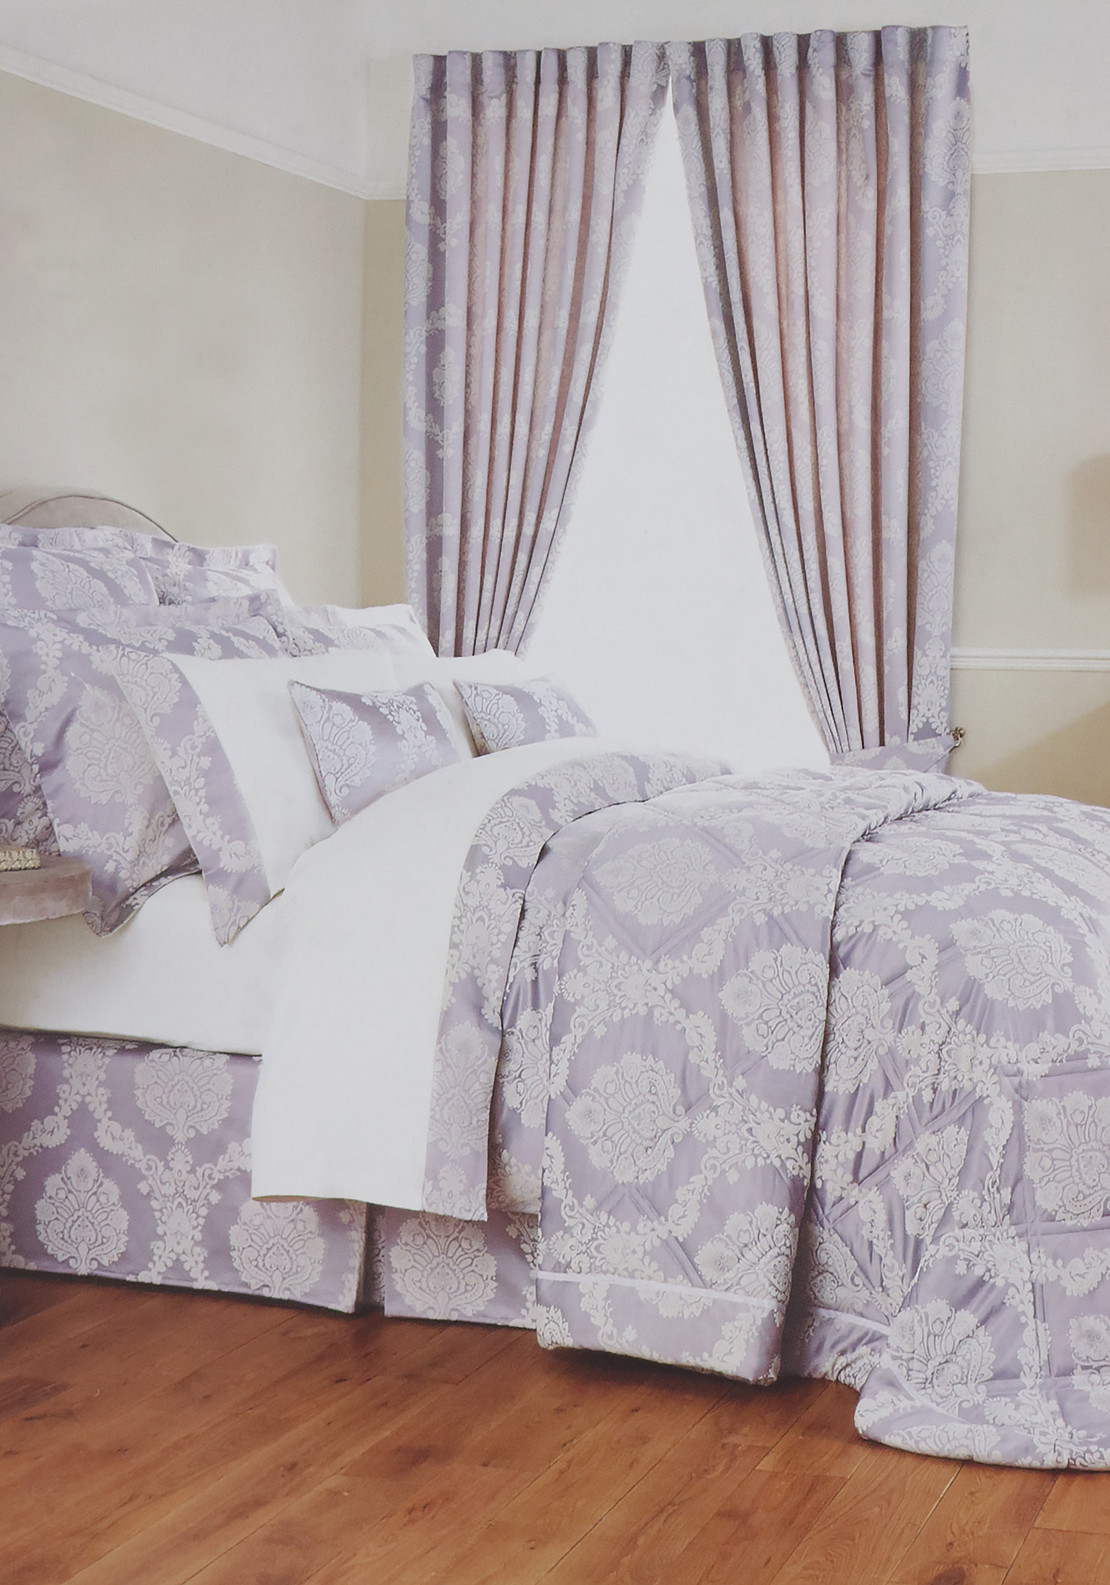 Christy Romeo Brocade Print Duvet Cover, Lavender Grey